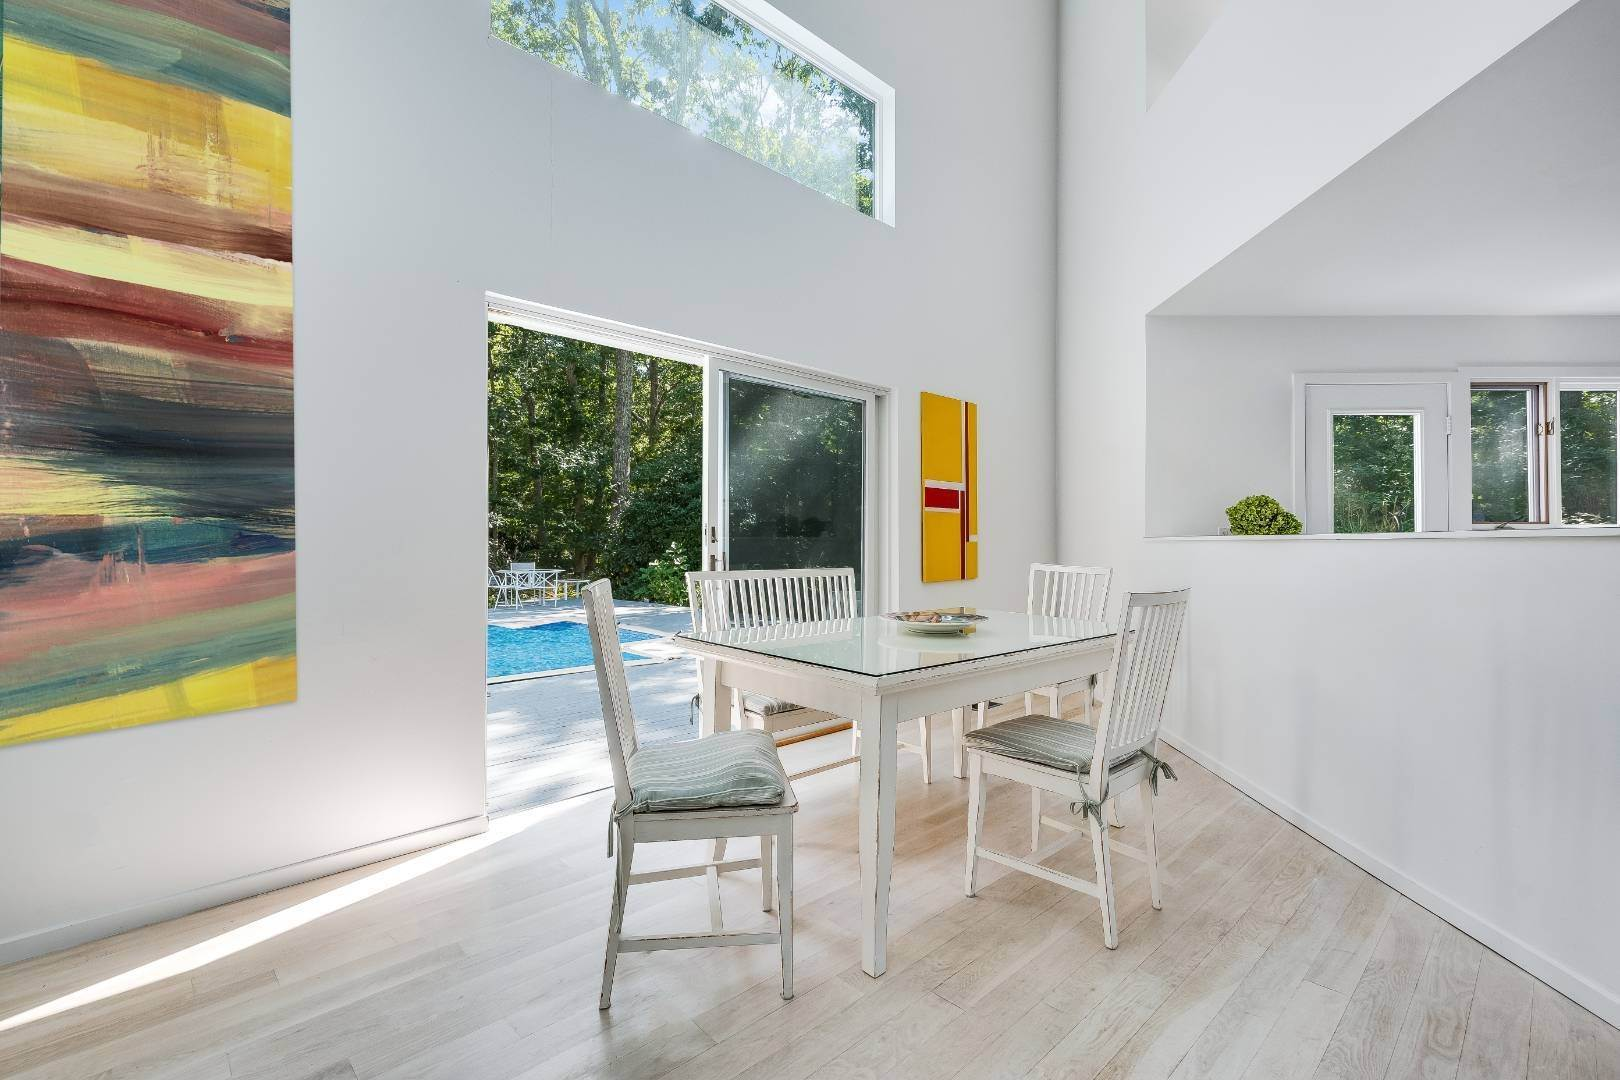 Single Family Home for Sale at Private Modern In East Hampton 25 Alewive Brook Road, East Hampton, NY 11937